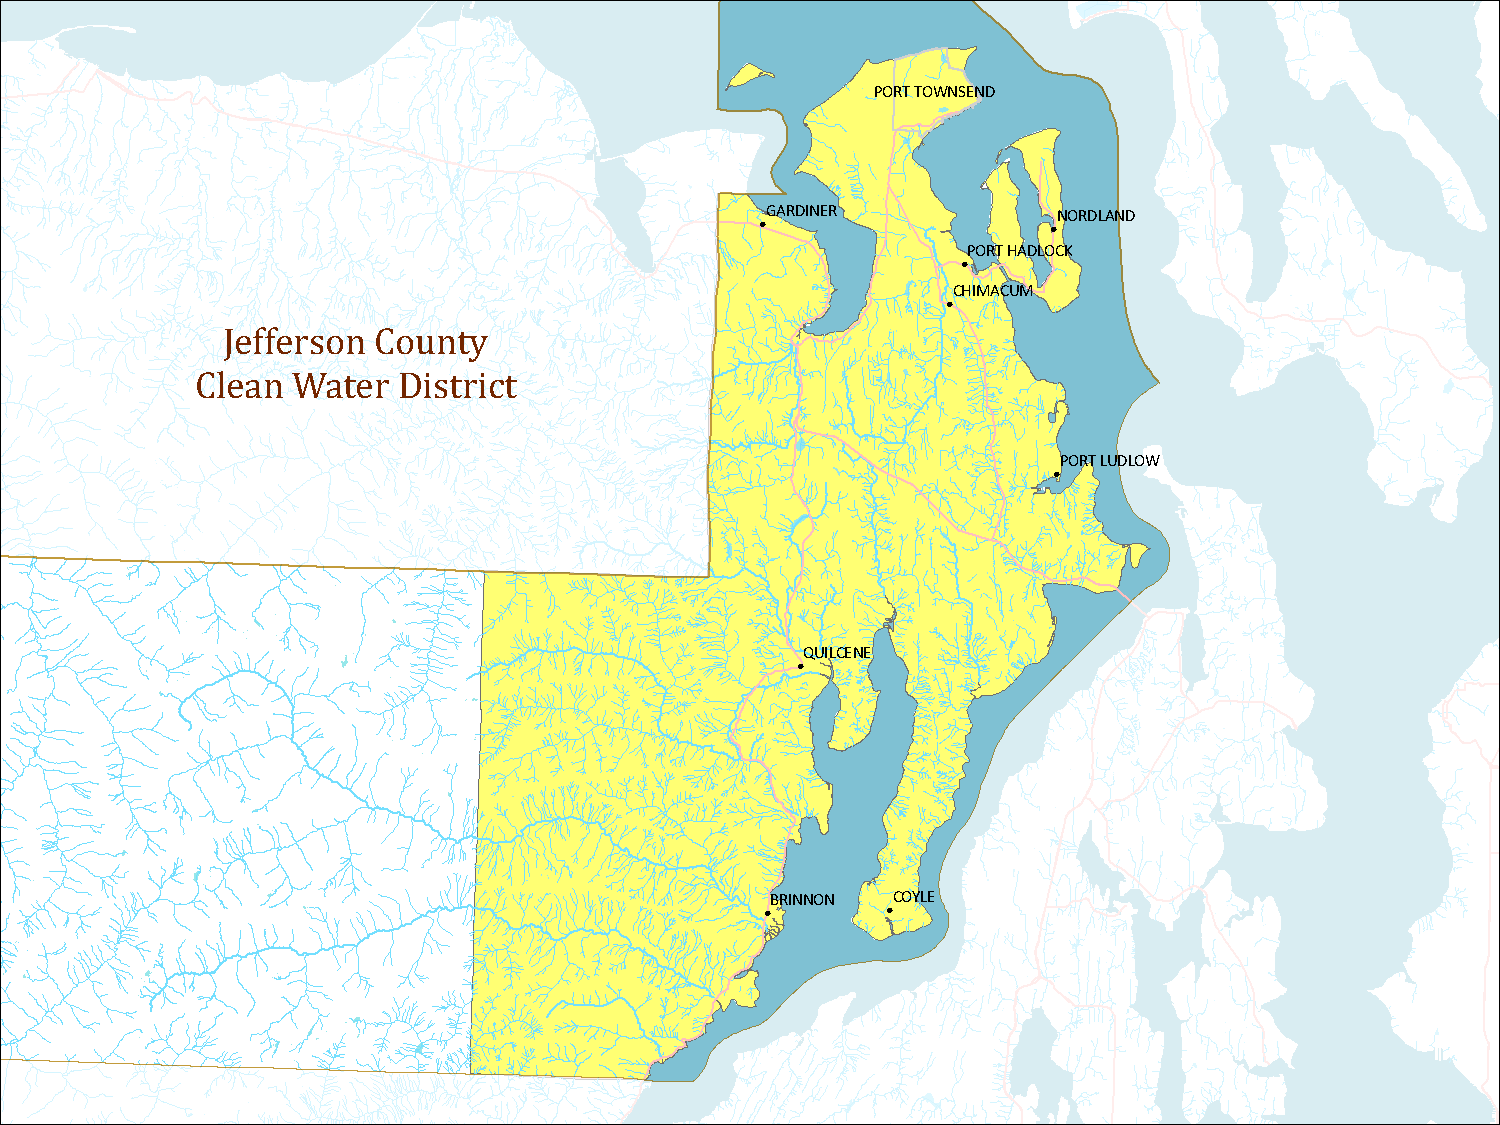 Clean Water District map